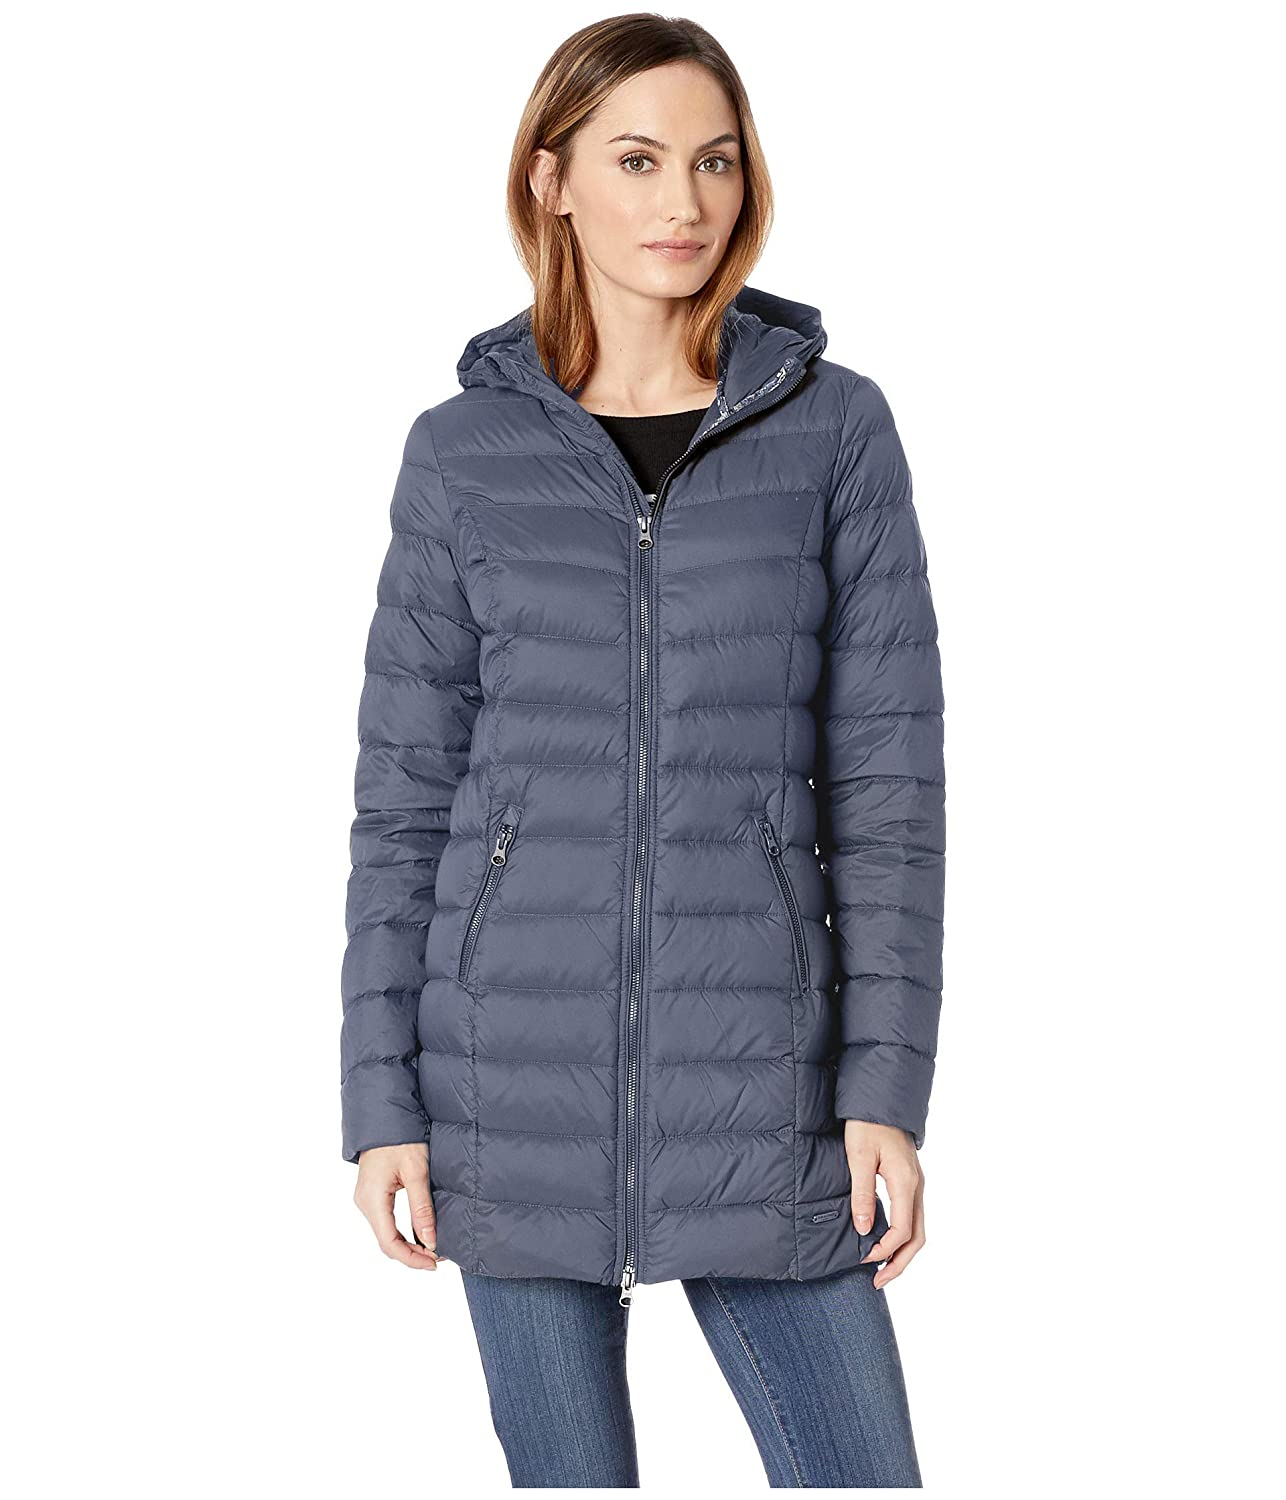 bf3af3334 ILSE JACOBSEN Blue Grayness Light Down Coat 44 at Amazon Women's ...